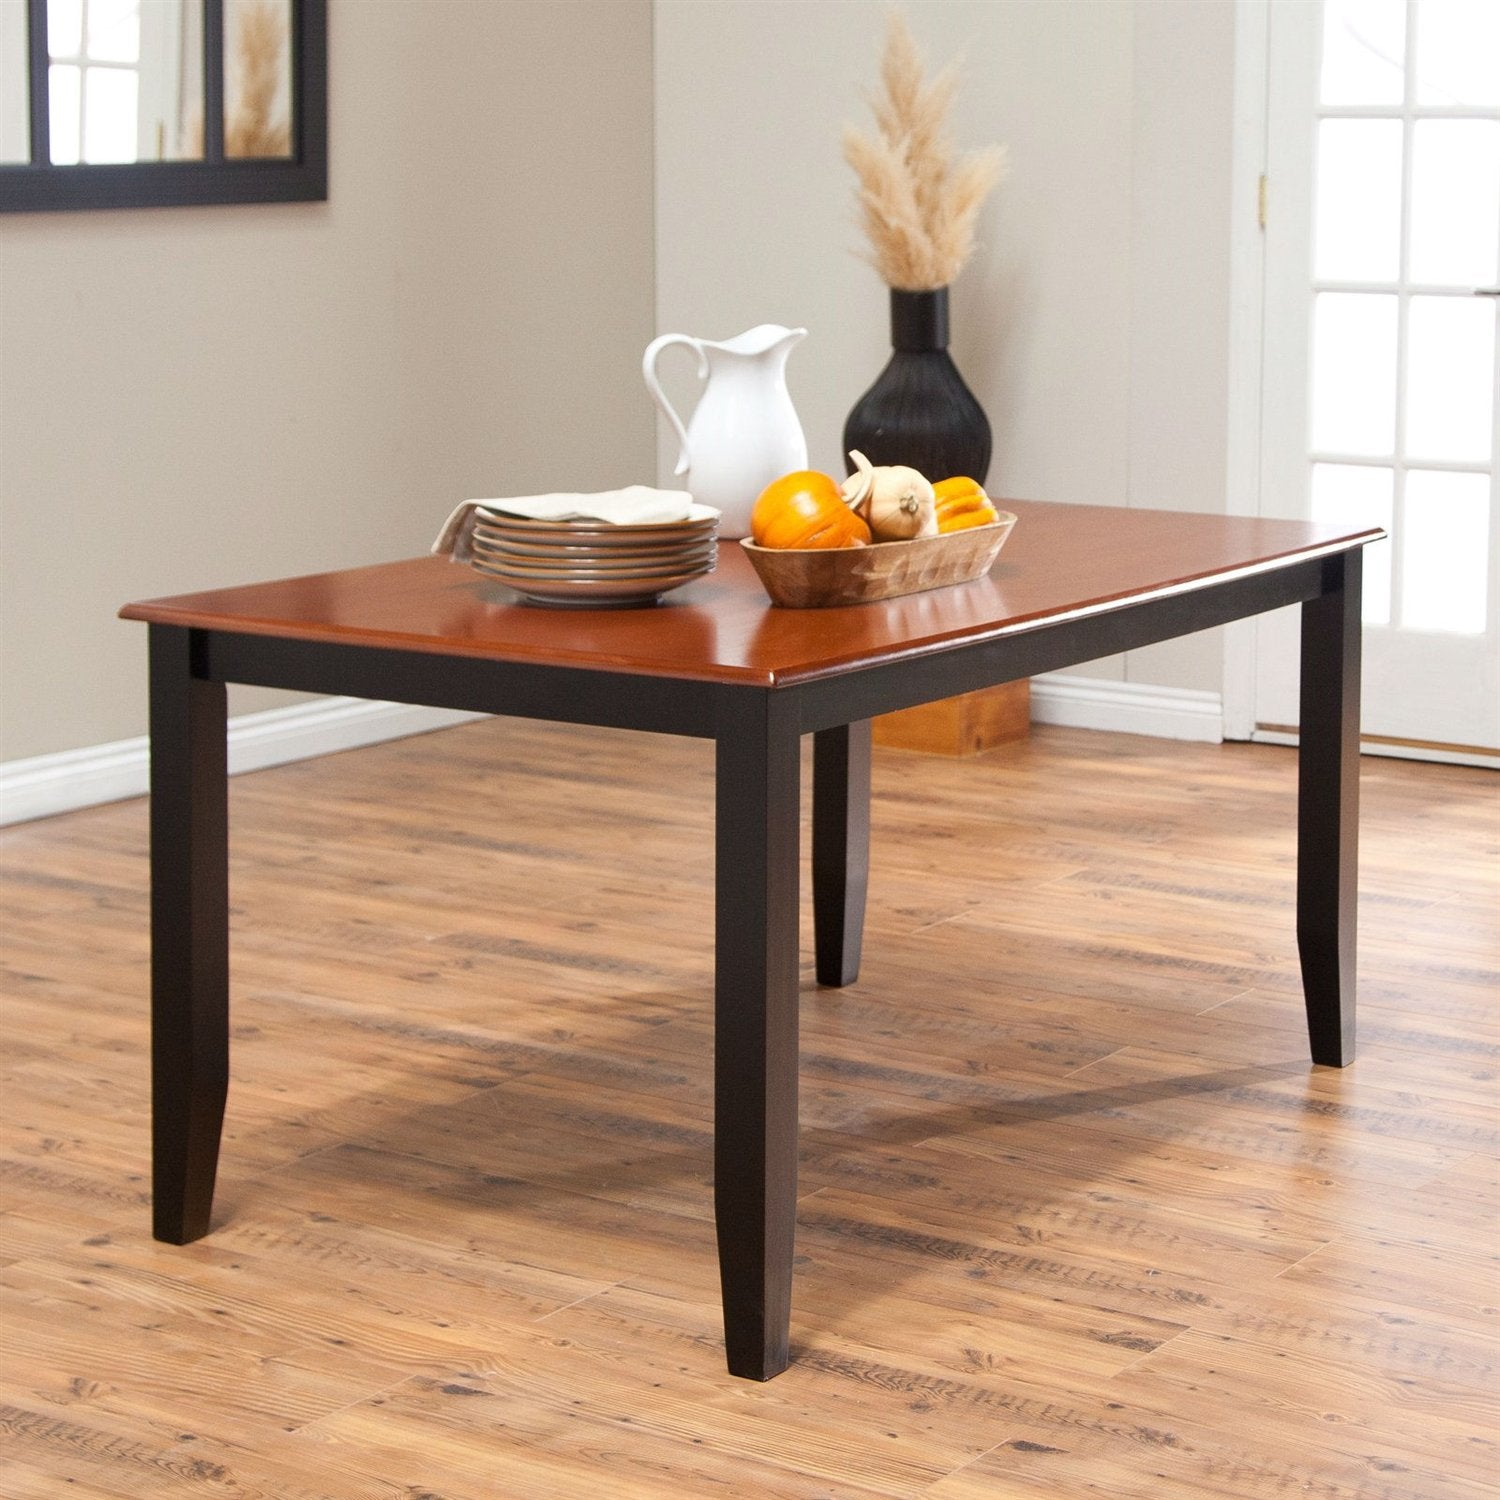 Solid Hardwood Two Tone Cherry Black Dining Table Seats up to 6